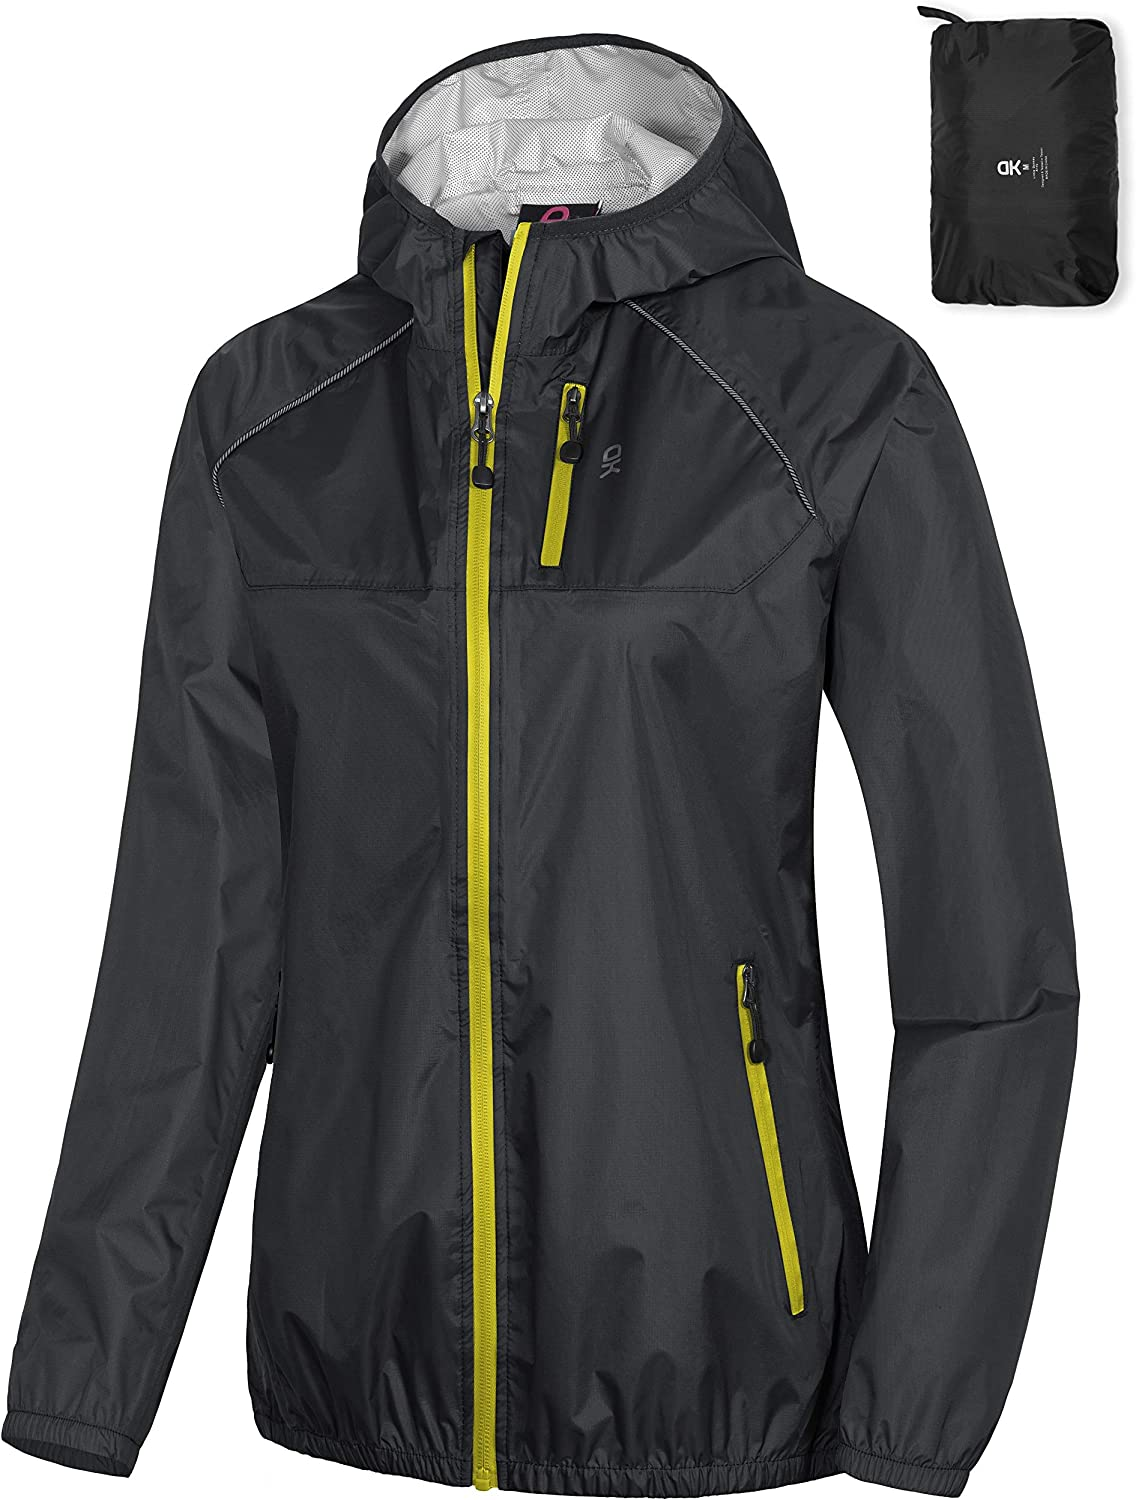 Industry No. 1 Little Donkey Andy Women's Waterproof Popular shop is the lowest price challenge Bike H Cycling with Jacket